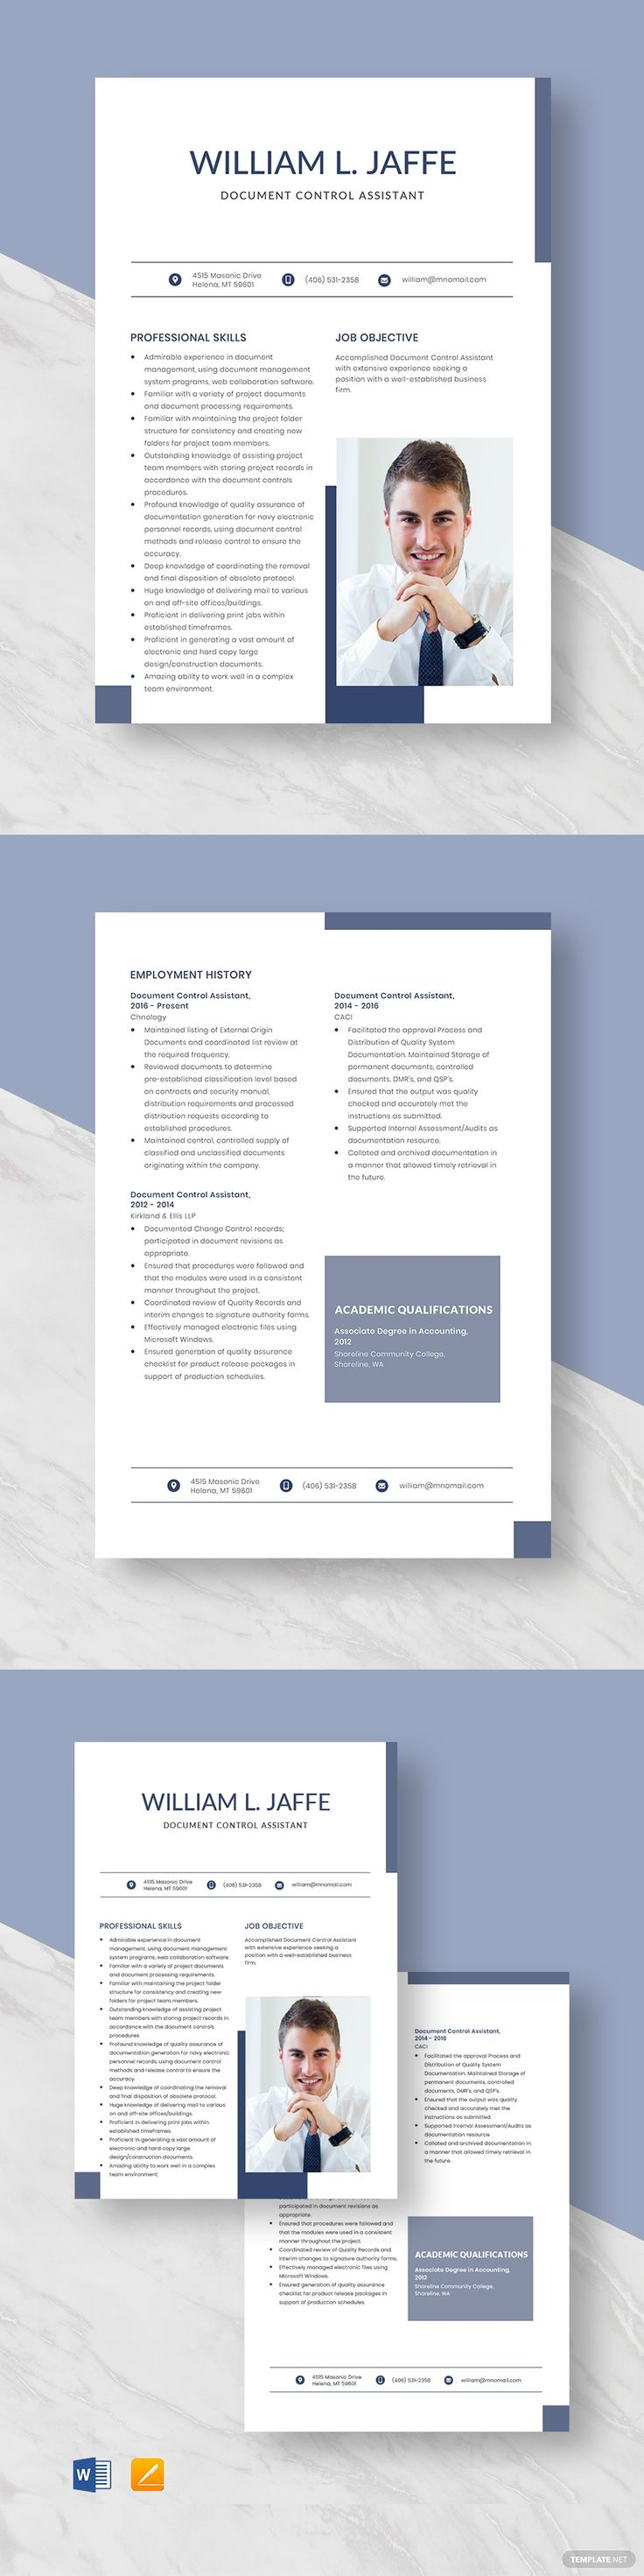 Free document control assistant resume template in 2020